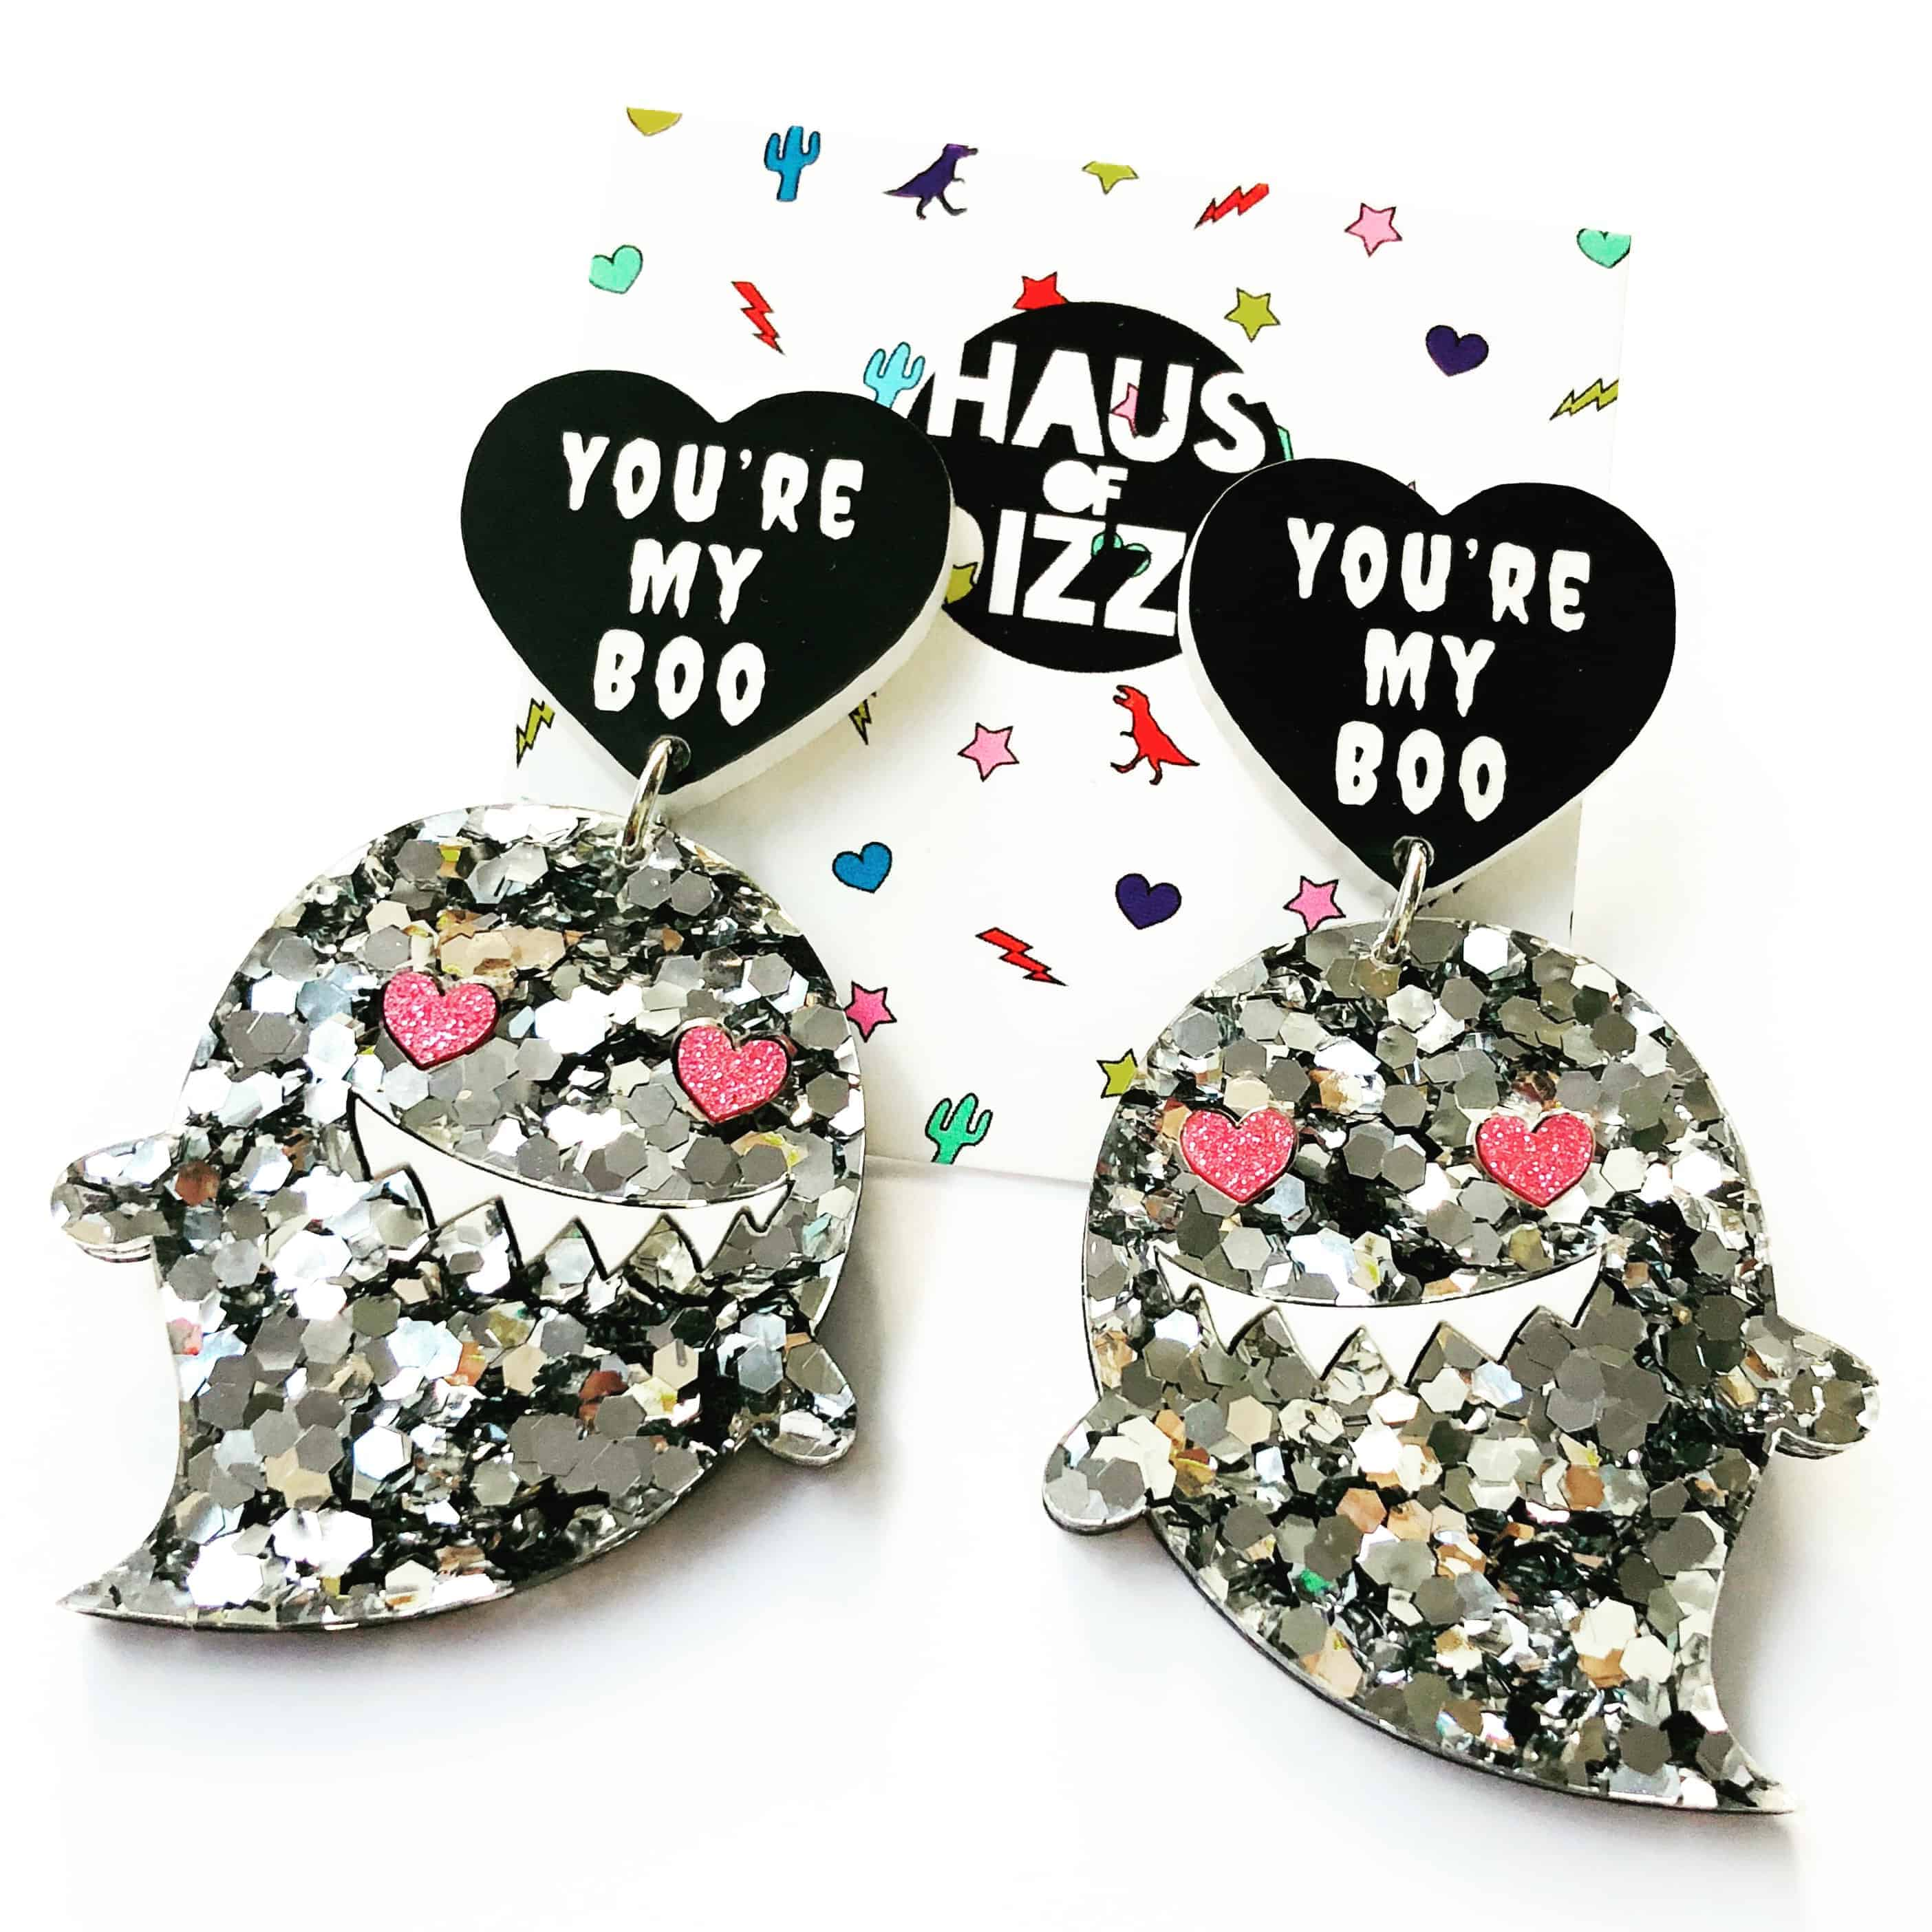 You're my Boo Limited Edition Earrings